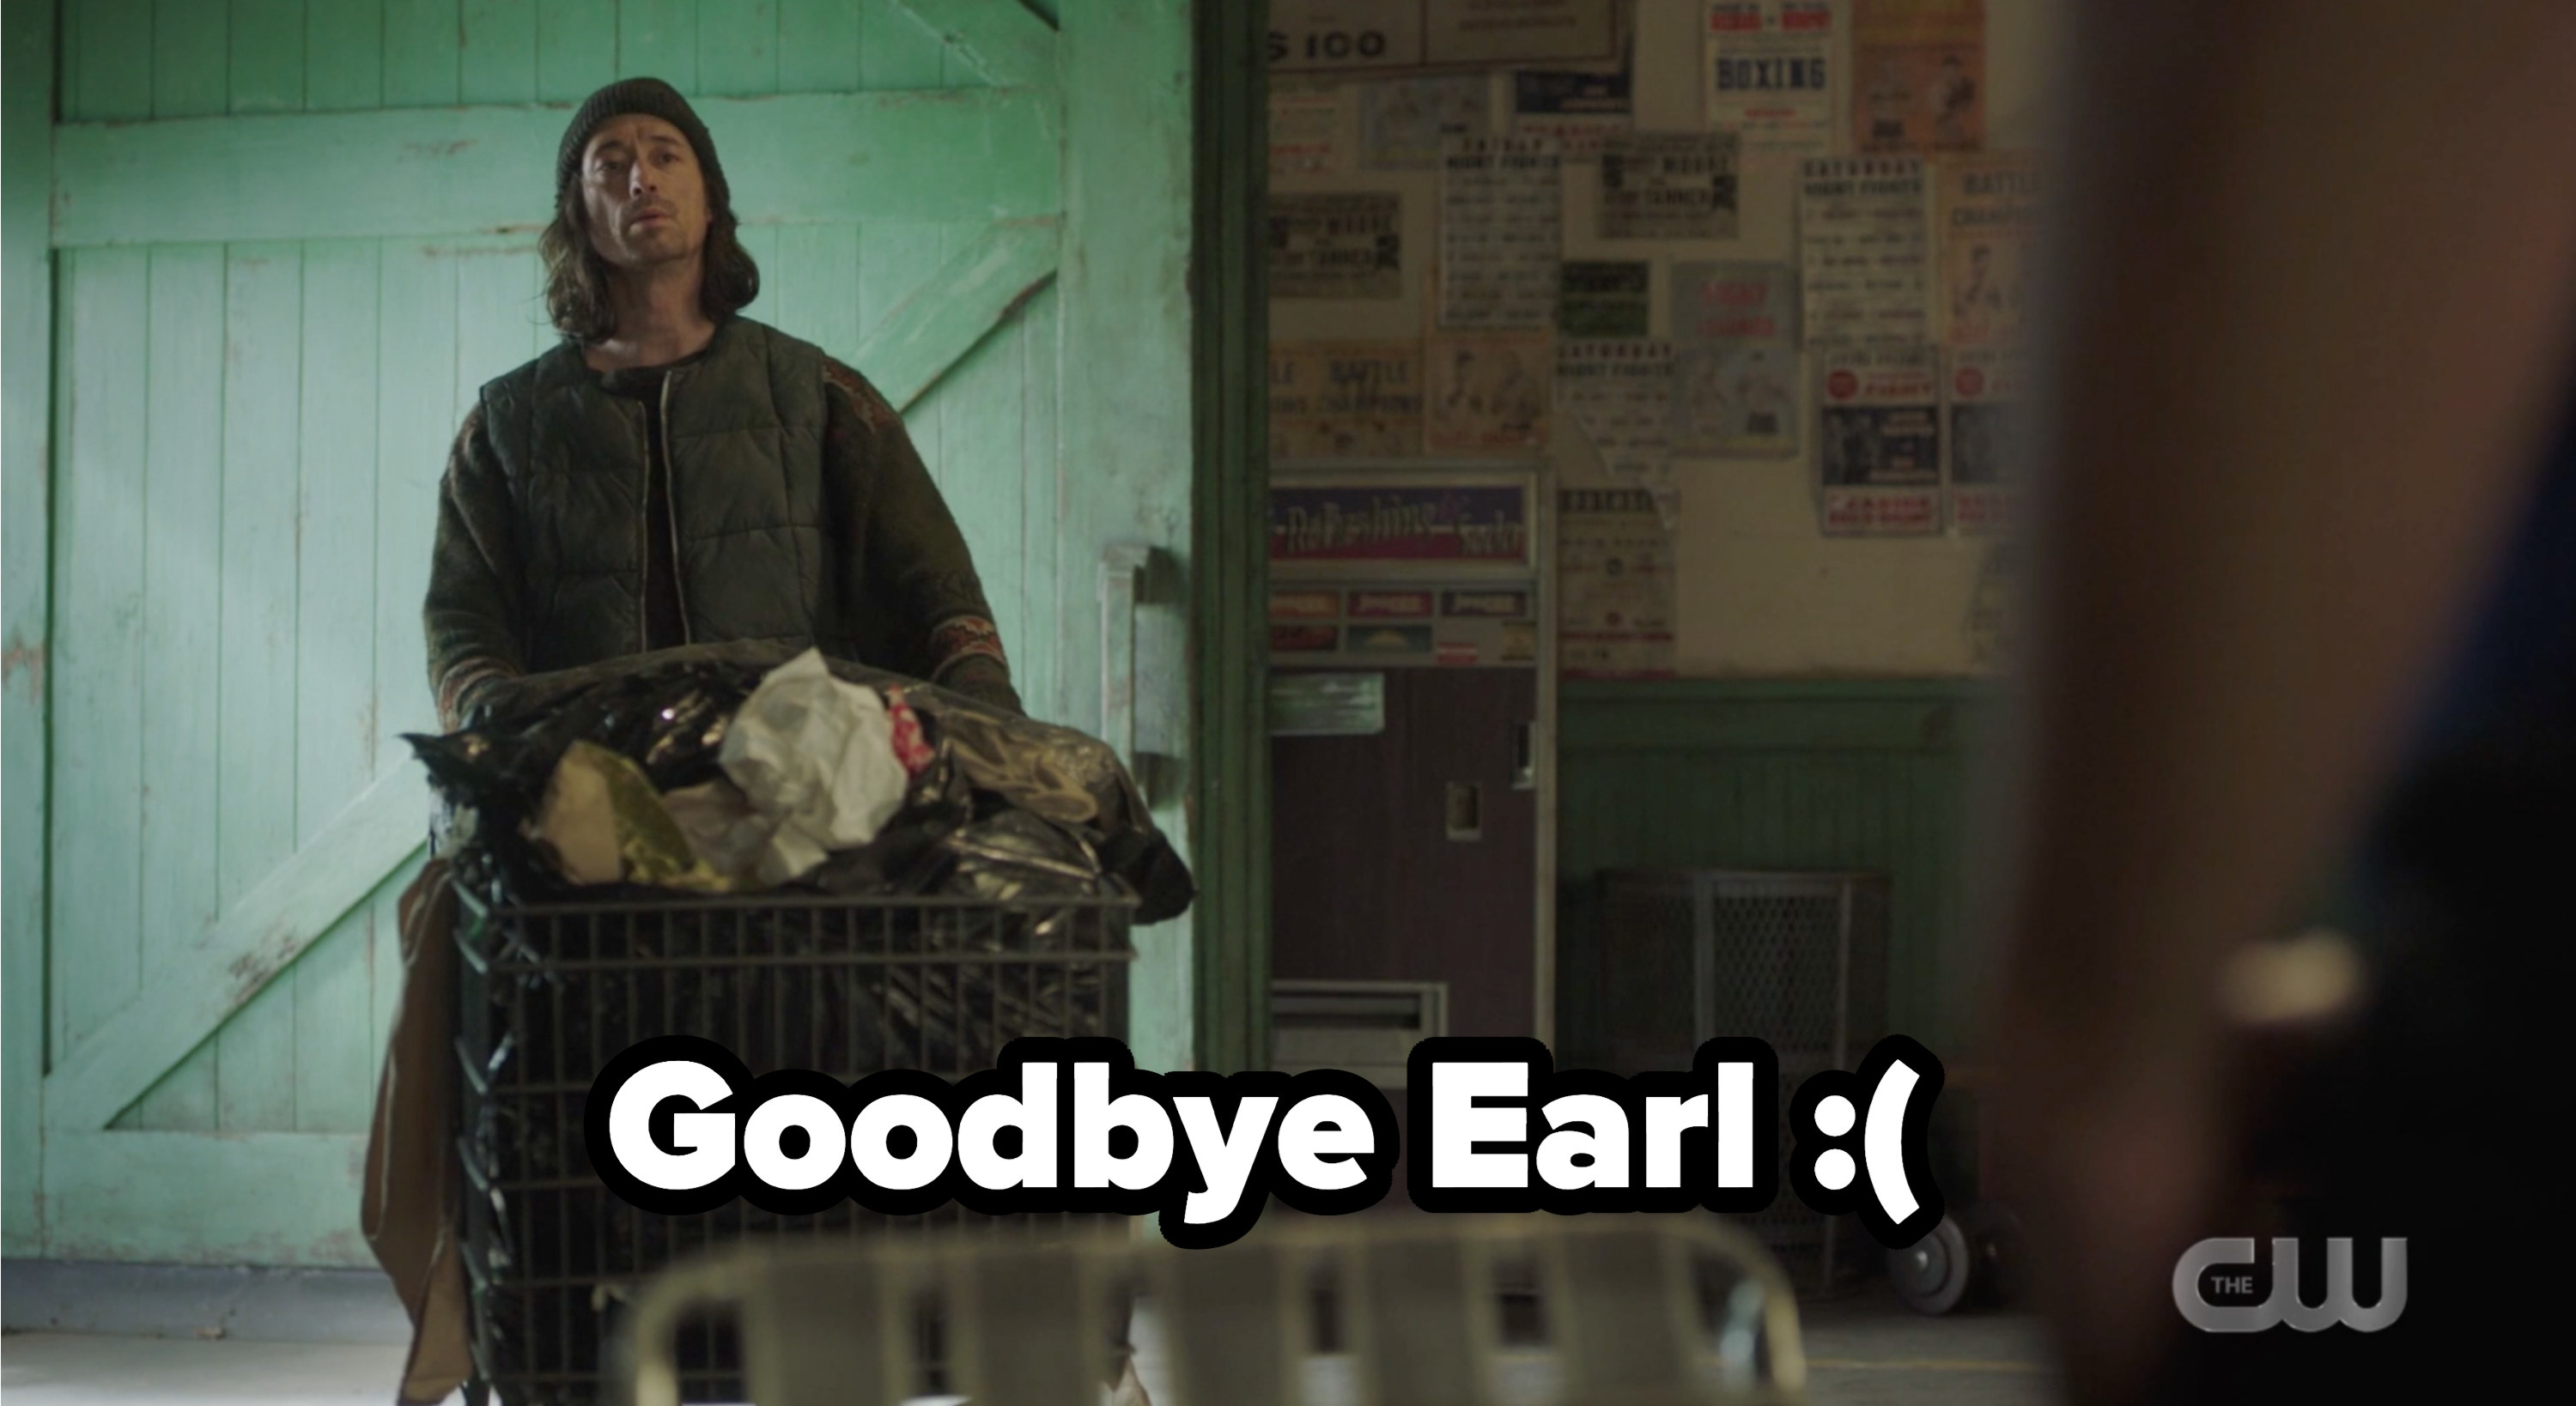 Earl with a message of Goodbye Earl